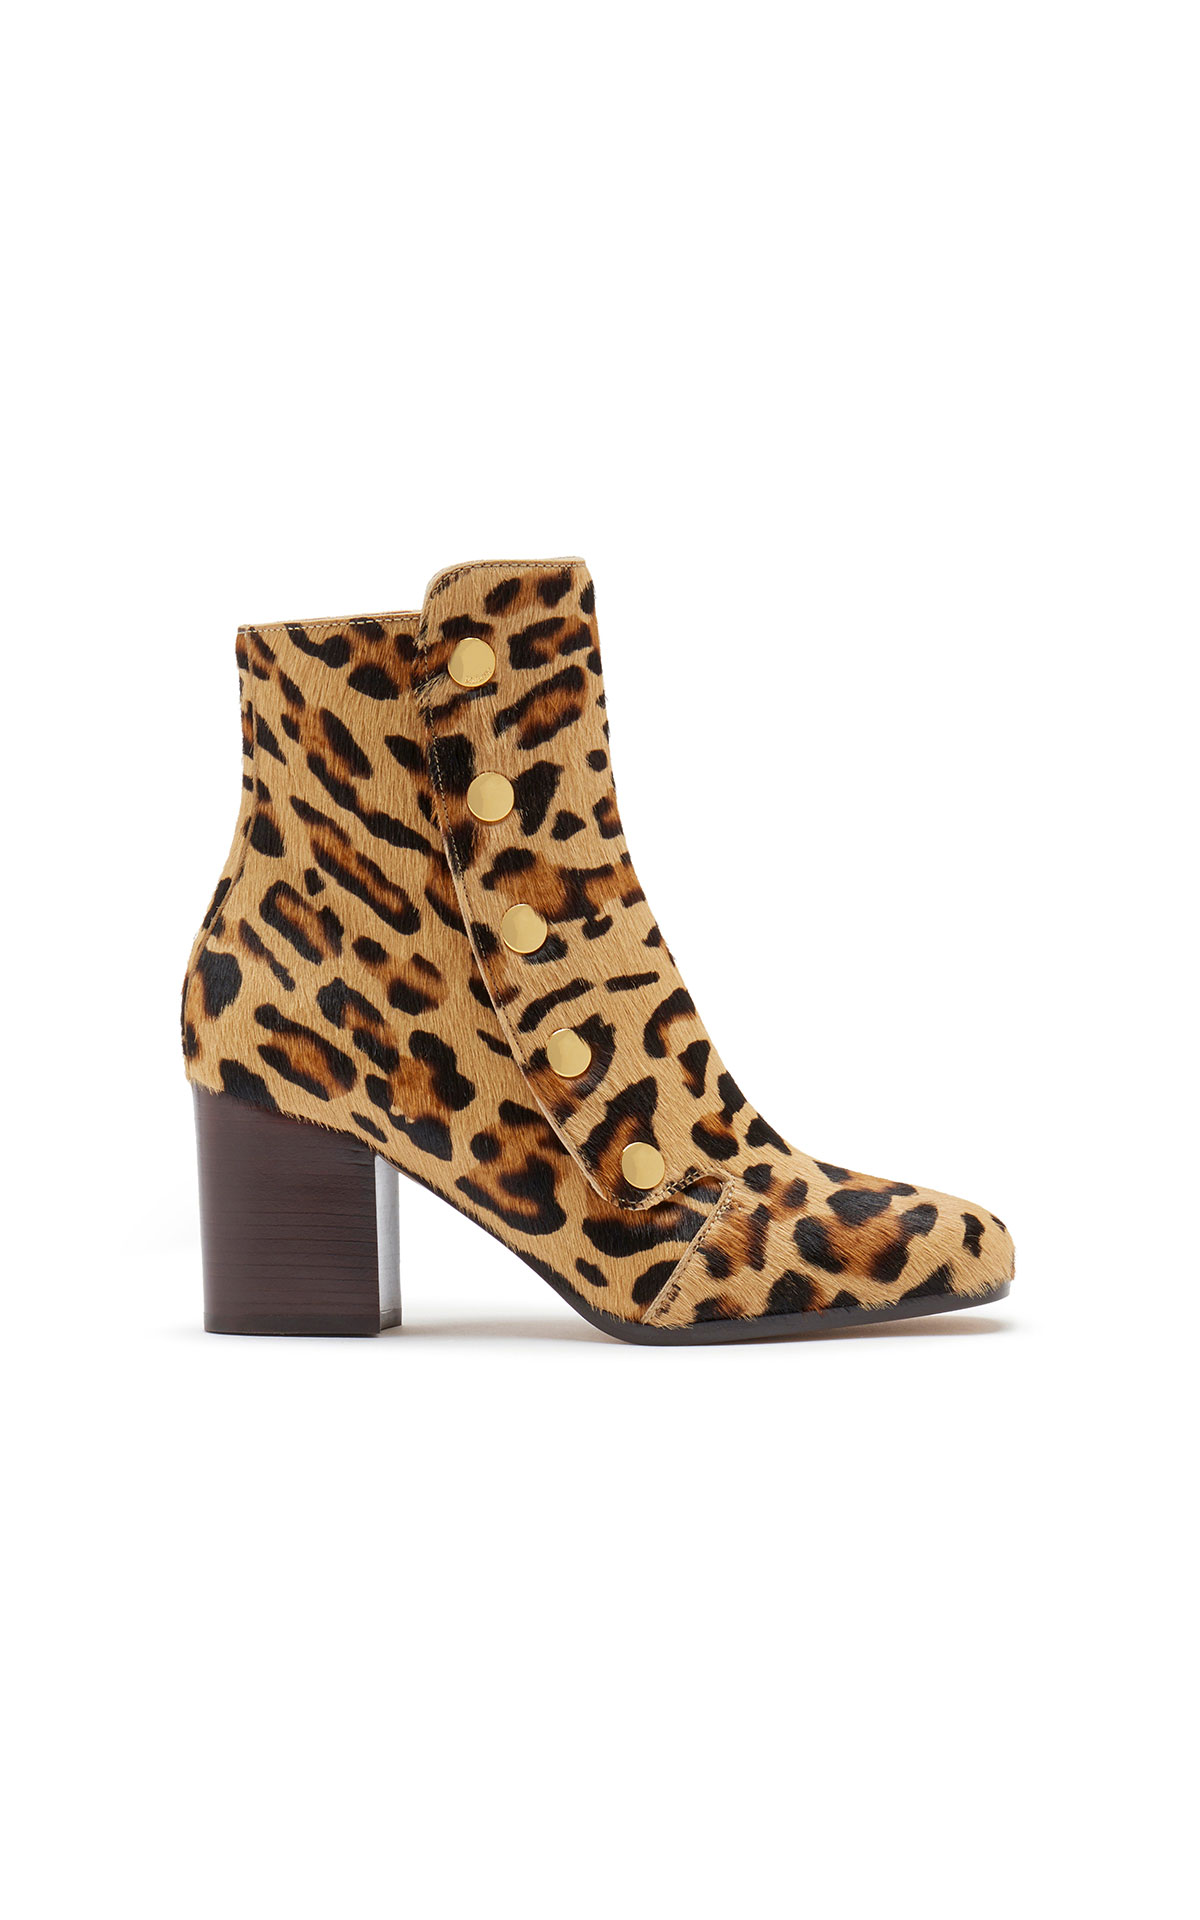 Mulberry Marylebone bootie 70 leopard print from Bicester Village